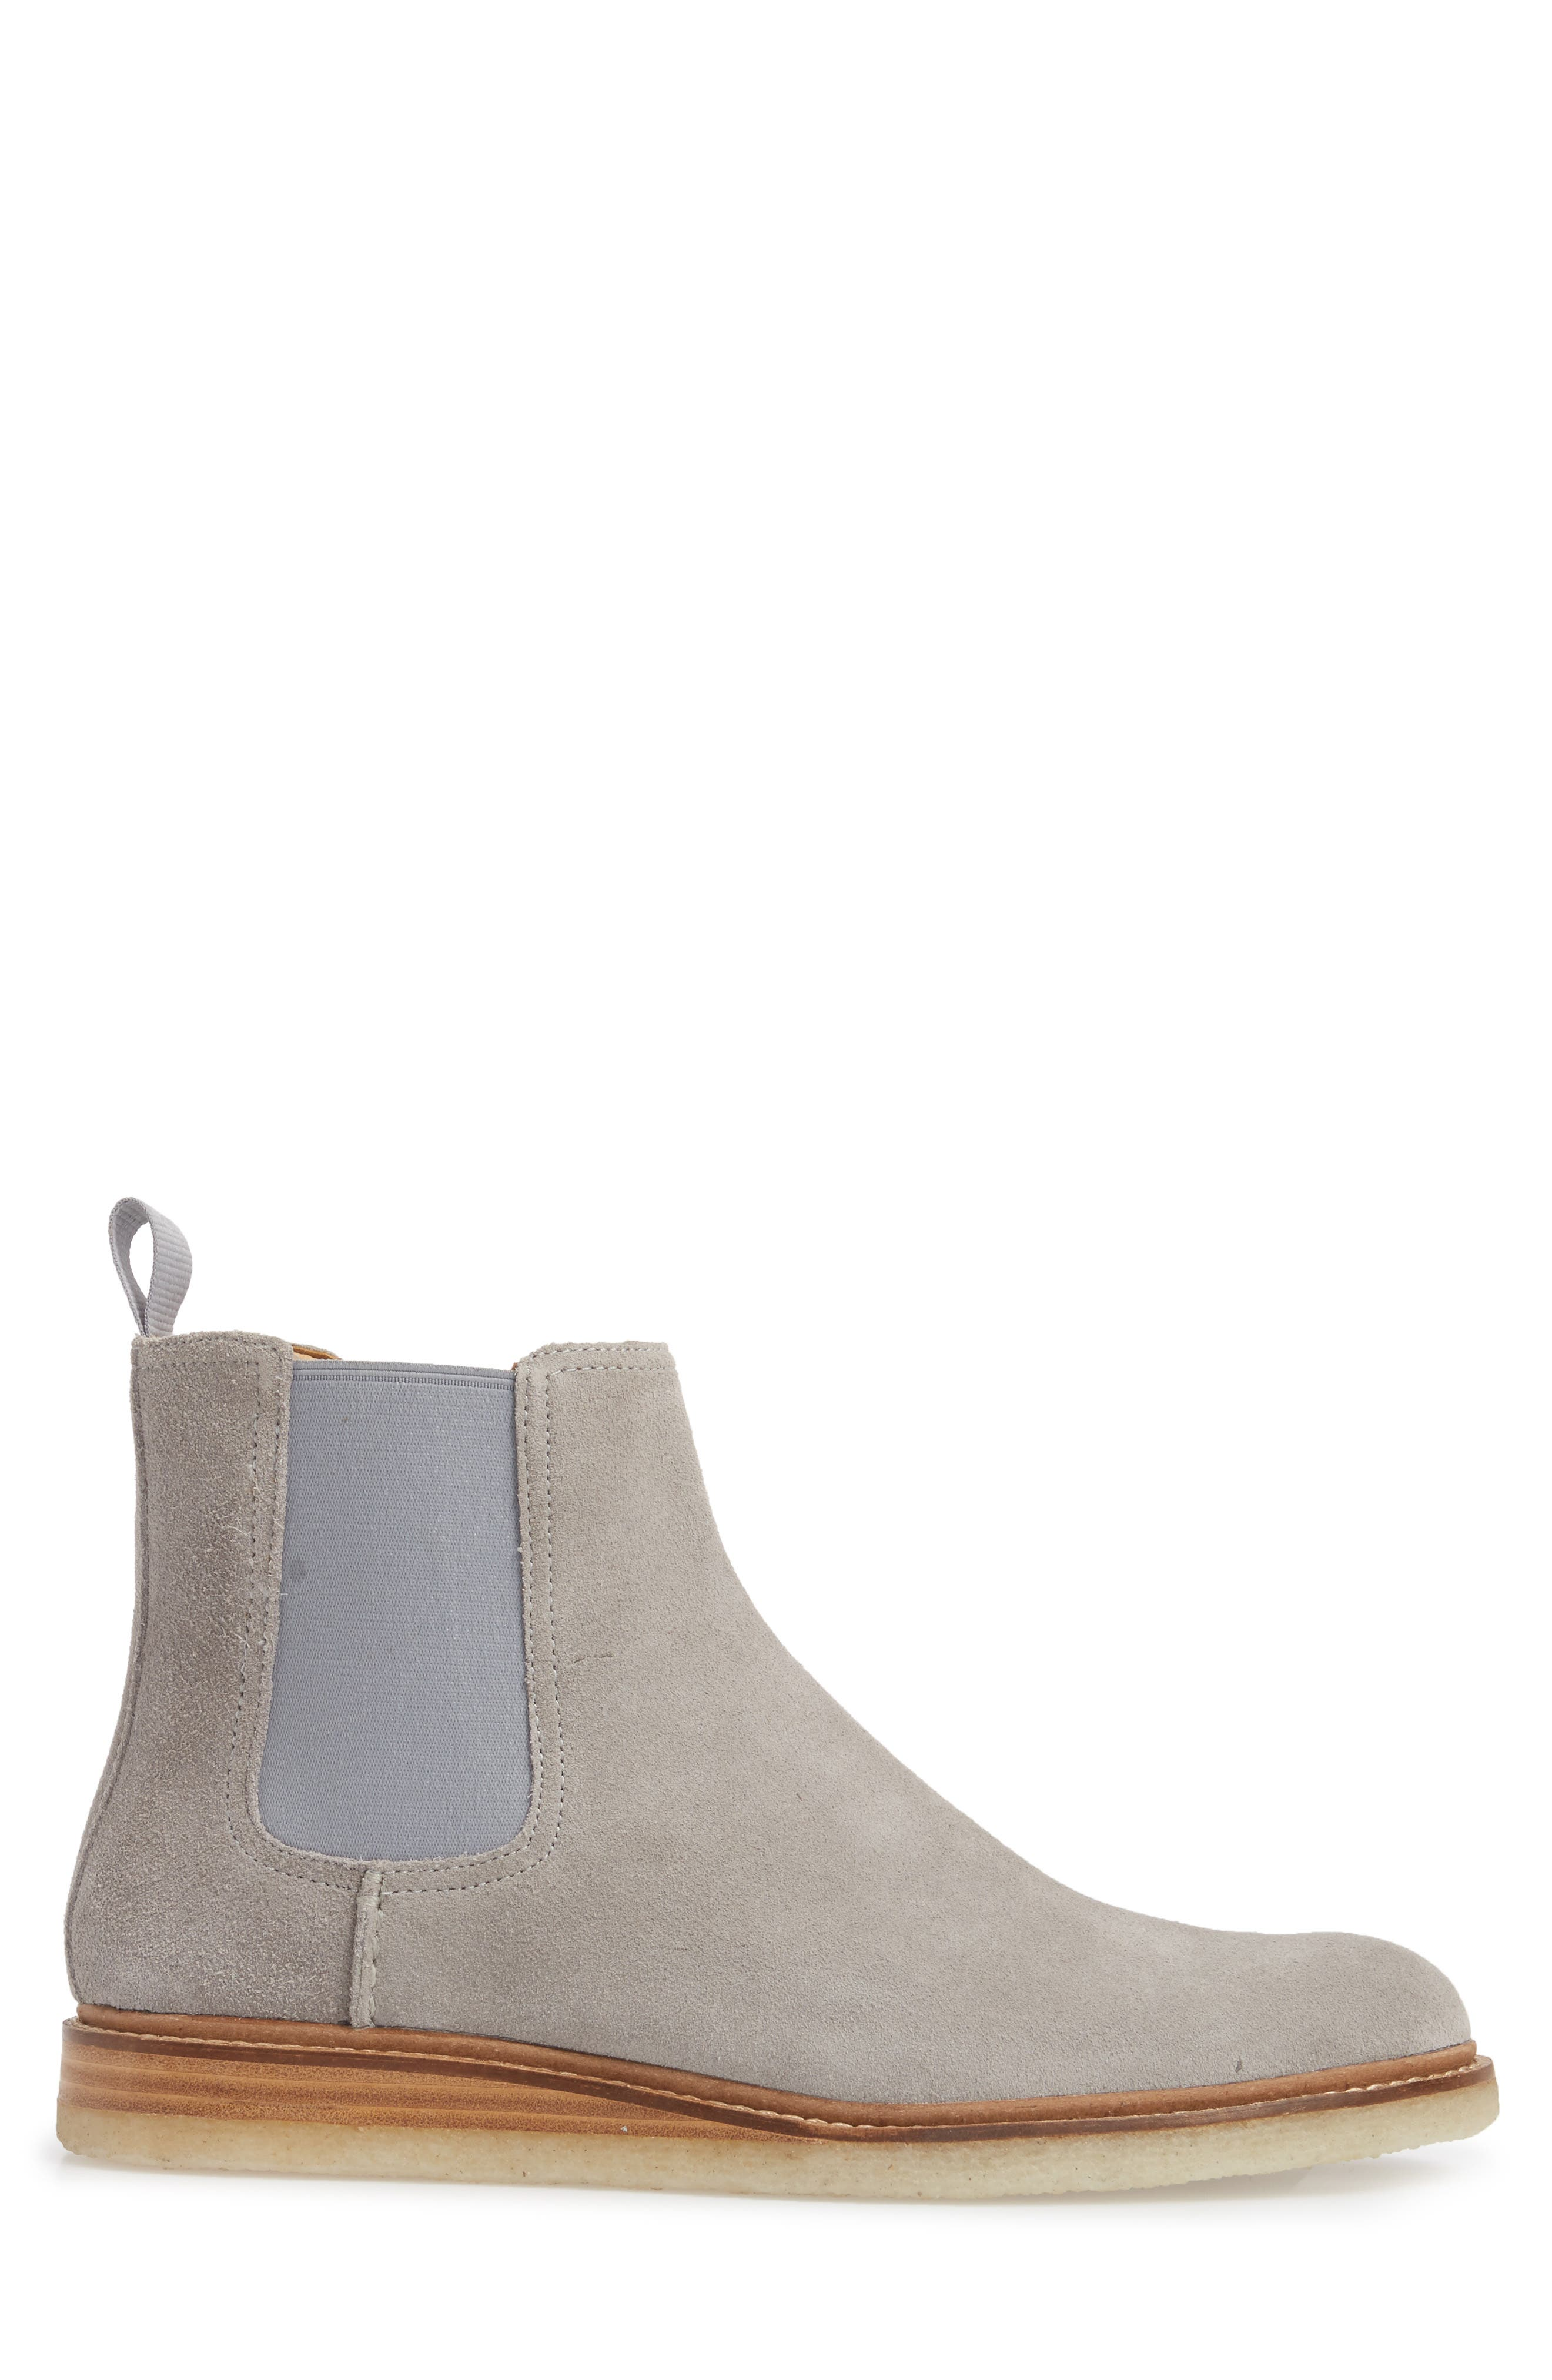 Gold Cup Crepe Chelsea Boot,                             Alternate thumbnail 3, color,                             020